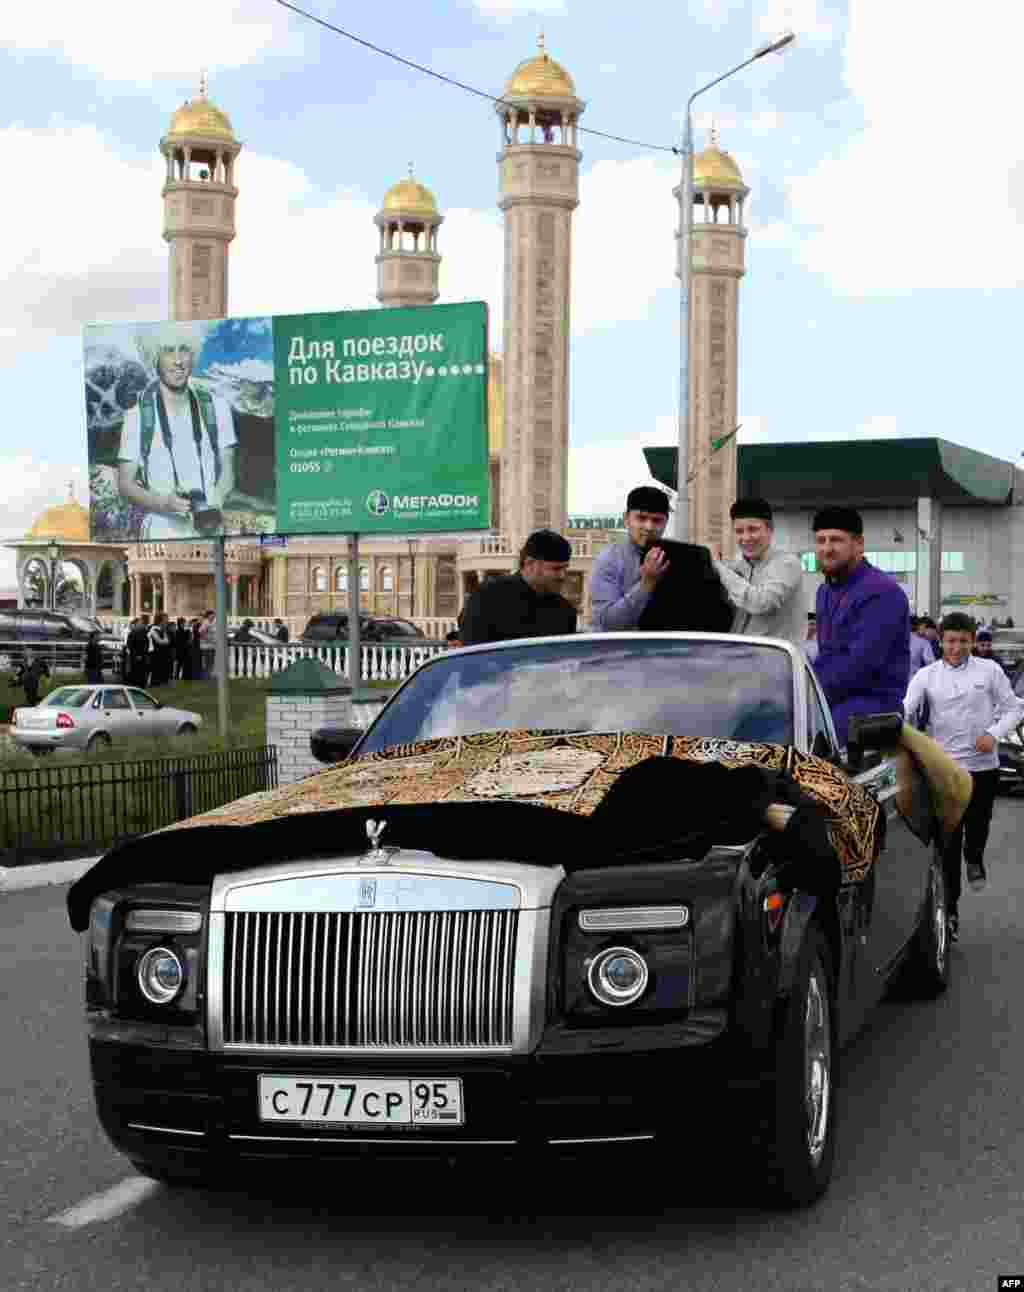 Kadyrov (right) rides in a Rolls-Royce Cabriolet in Grozny in 2011.